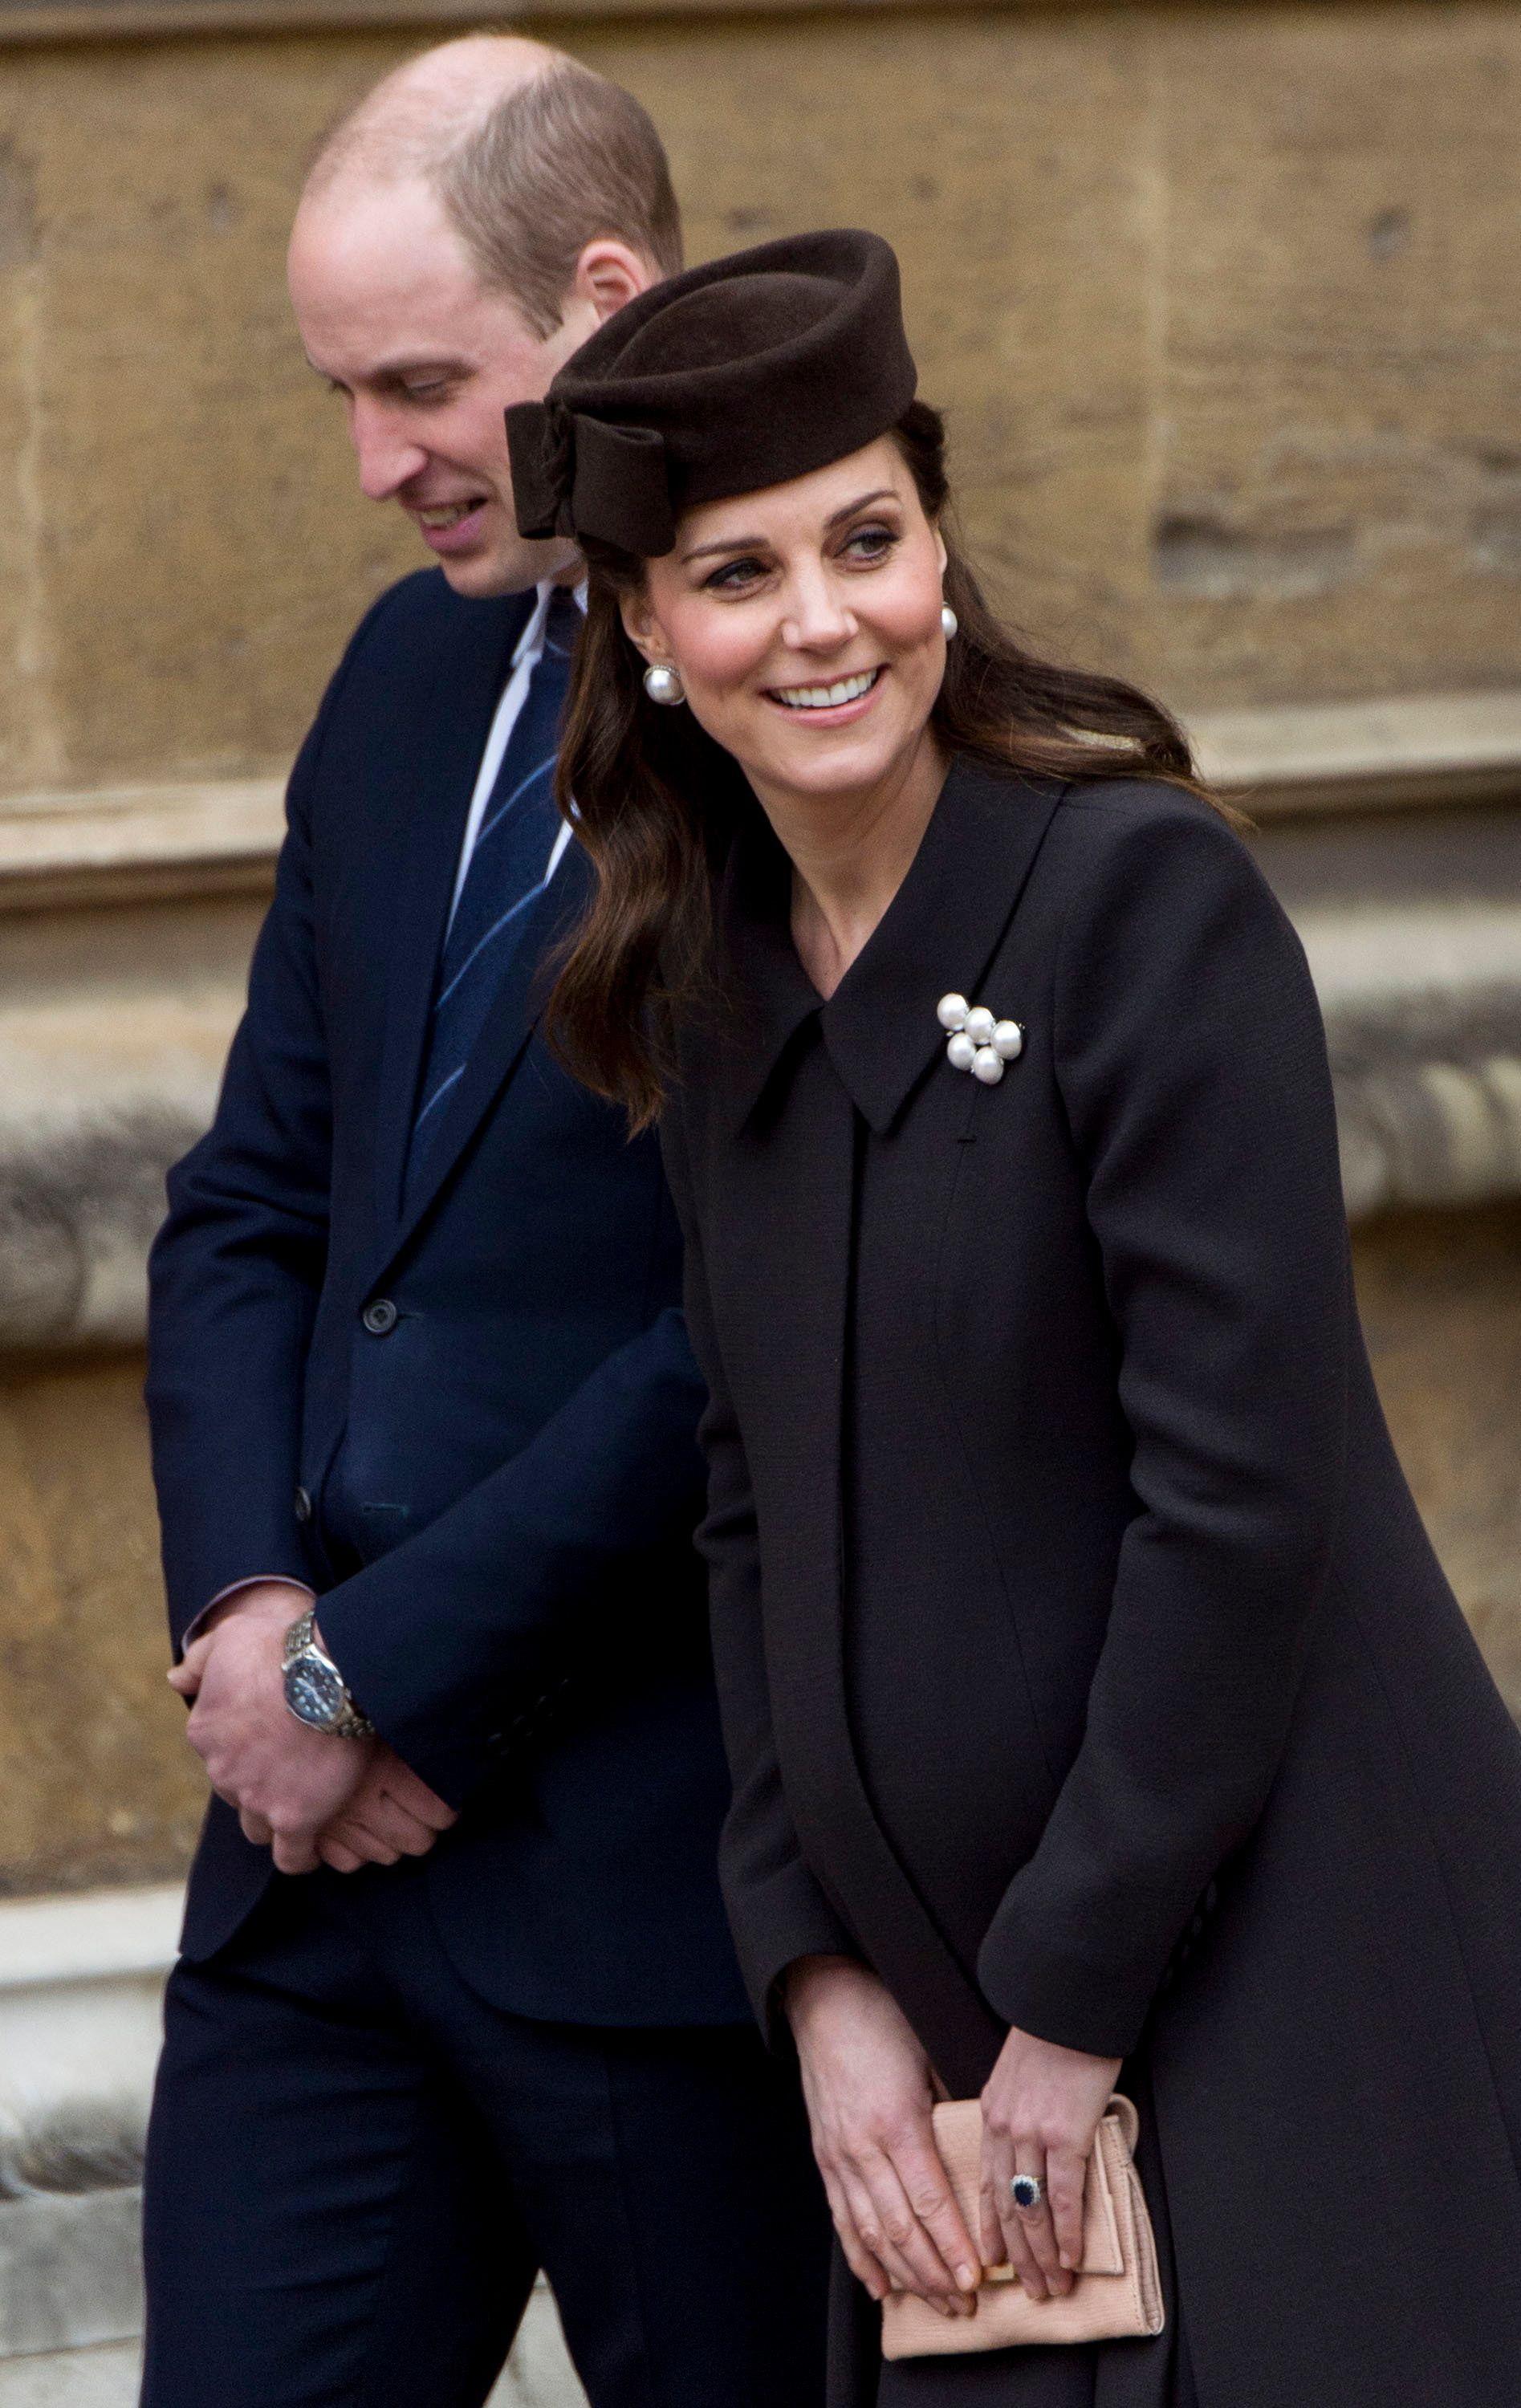 The Duke and Duchess of Cambridge arrived a bit late to the